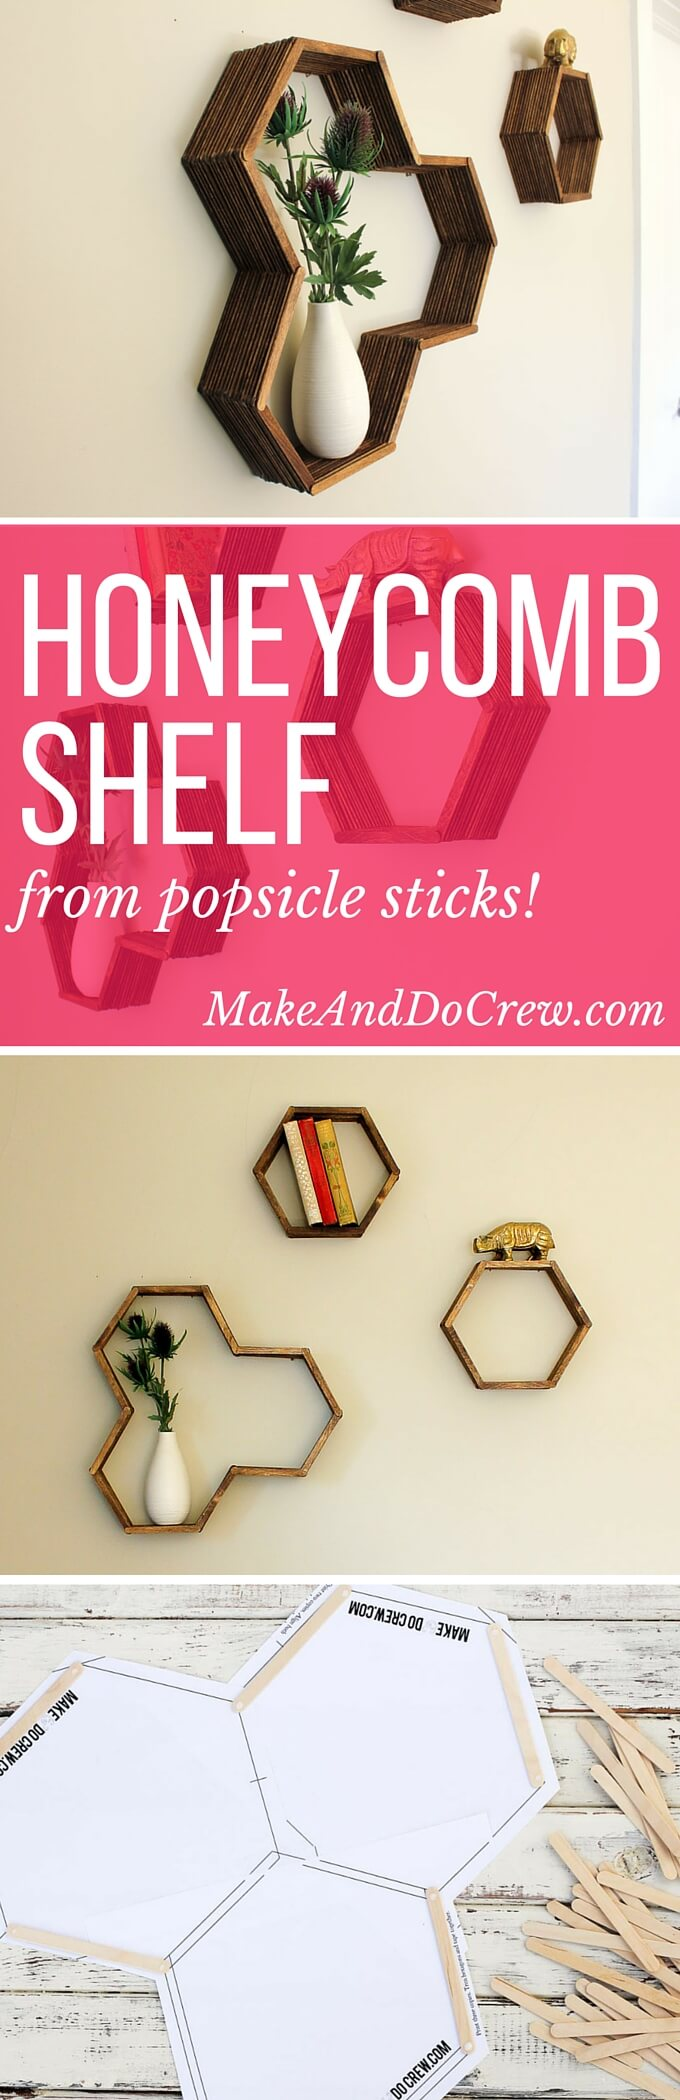 Make awesome mid century modern honeycomb shelves for less than $10 using popsicle sticks! These West Elm worthy hexagon shelves add warmth and dimension to any gallery wall and also look great on their own. Click for instructions and free downloadable template. | MakeAndDoCrew.com